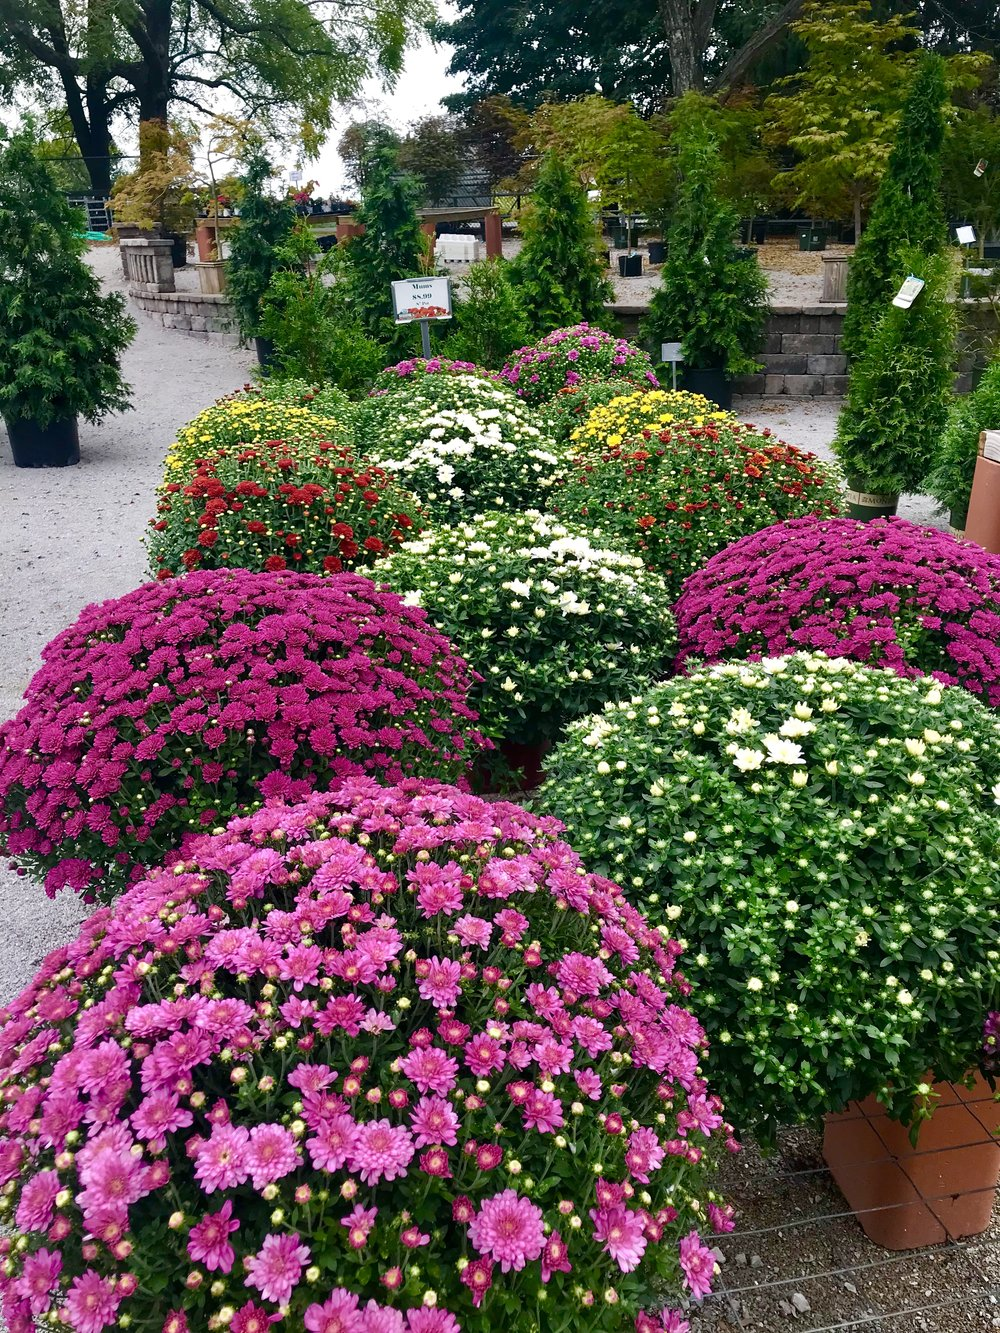 Mums are here!  - If you are looking for a pop of color this season, you can't go wrong with a Mum. We source ALL of our Mums from local farms. We are Kentucky proud!